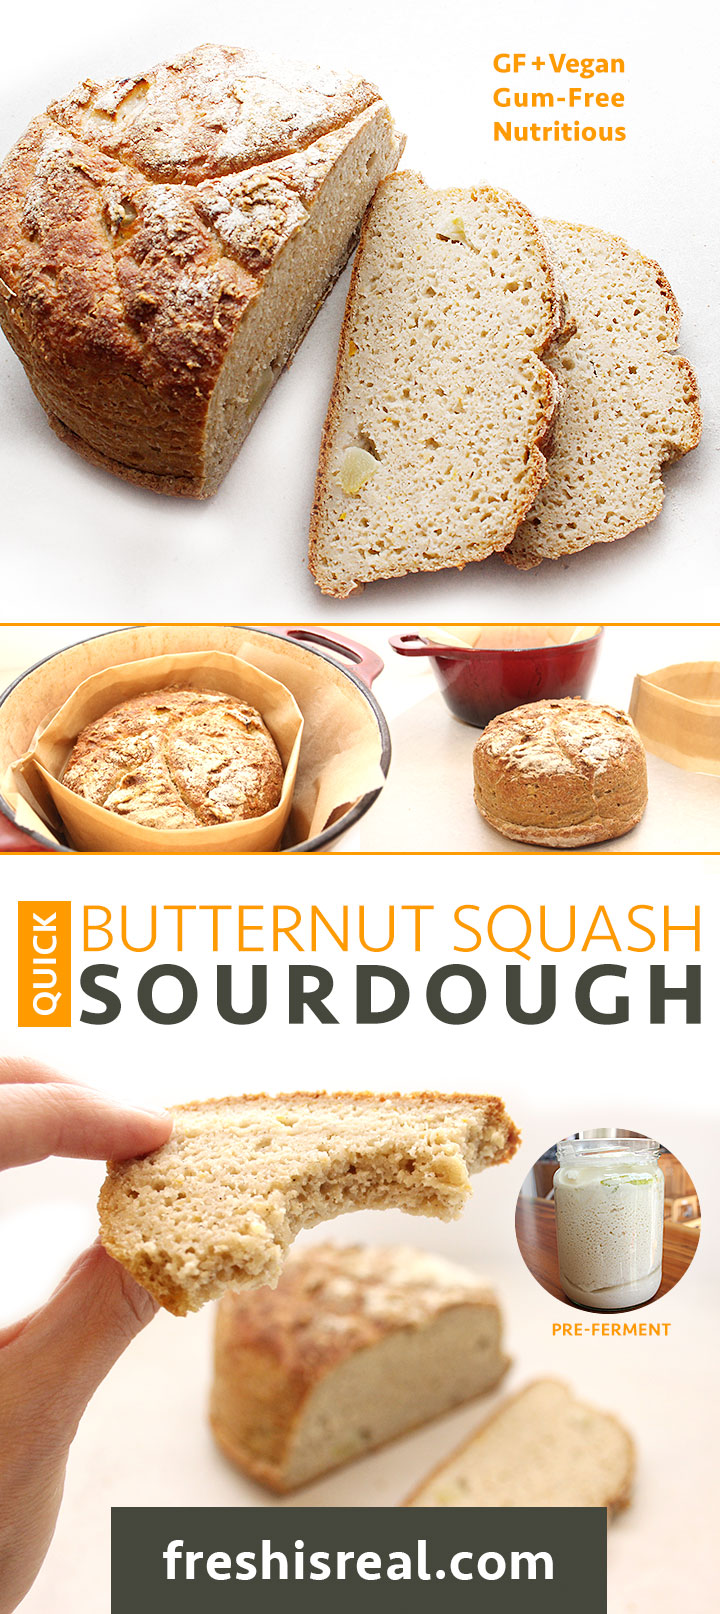 This Quick Butternut Squash Sourdough recipe is simple: combine buckwheat flour, water organic apples and a pinch of active yeast to create a pre-ferment on day one. Then on day two mix your bread ingredients with the pre-ferment and let your bread dough rise for a couple of hours. Bake your loaf at 450 degrees F until crispy on the outside. Find the recipe at freshisreal.com